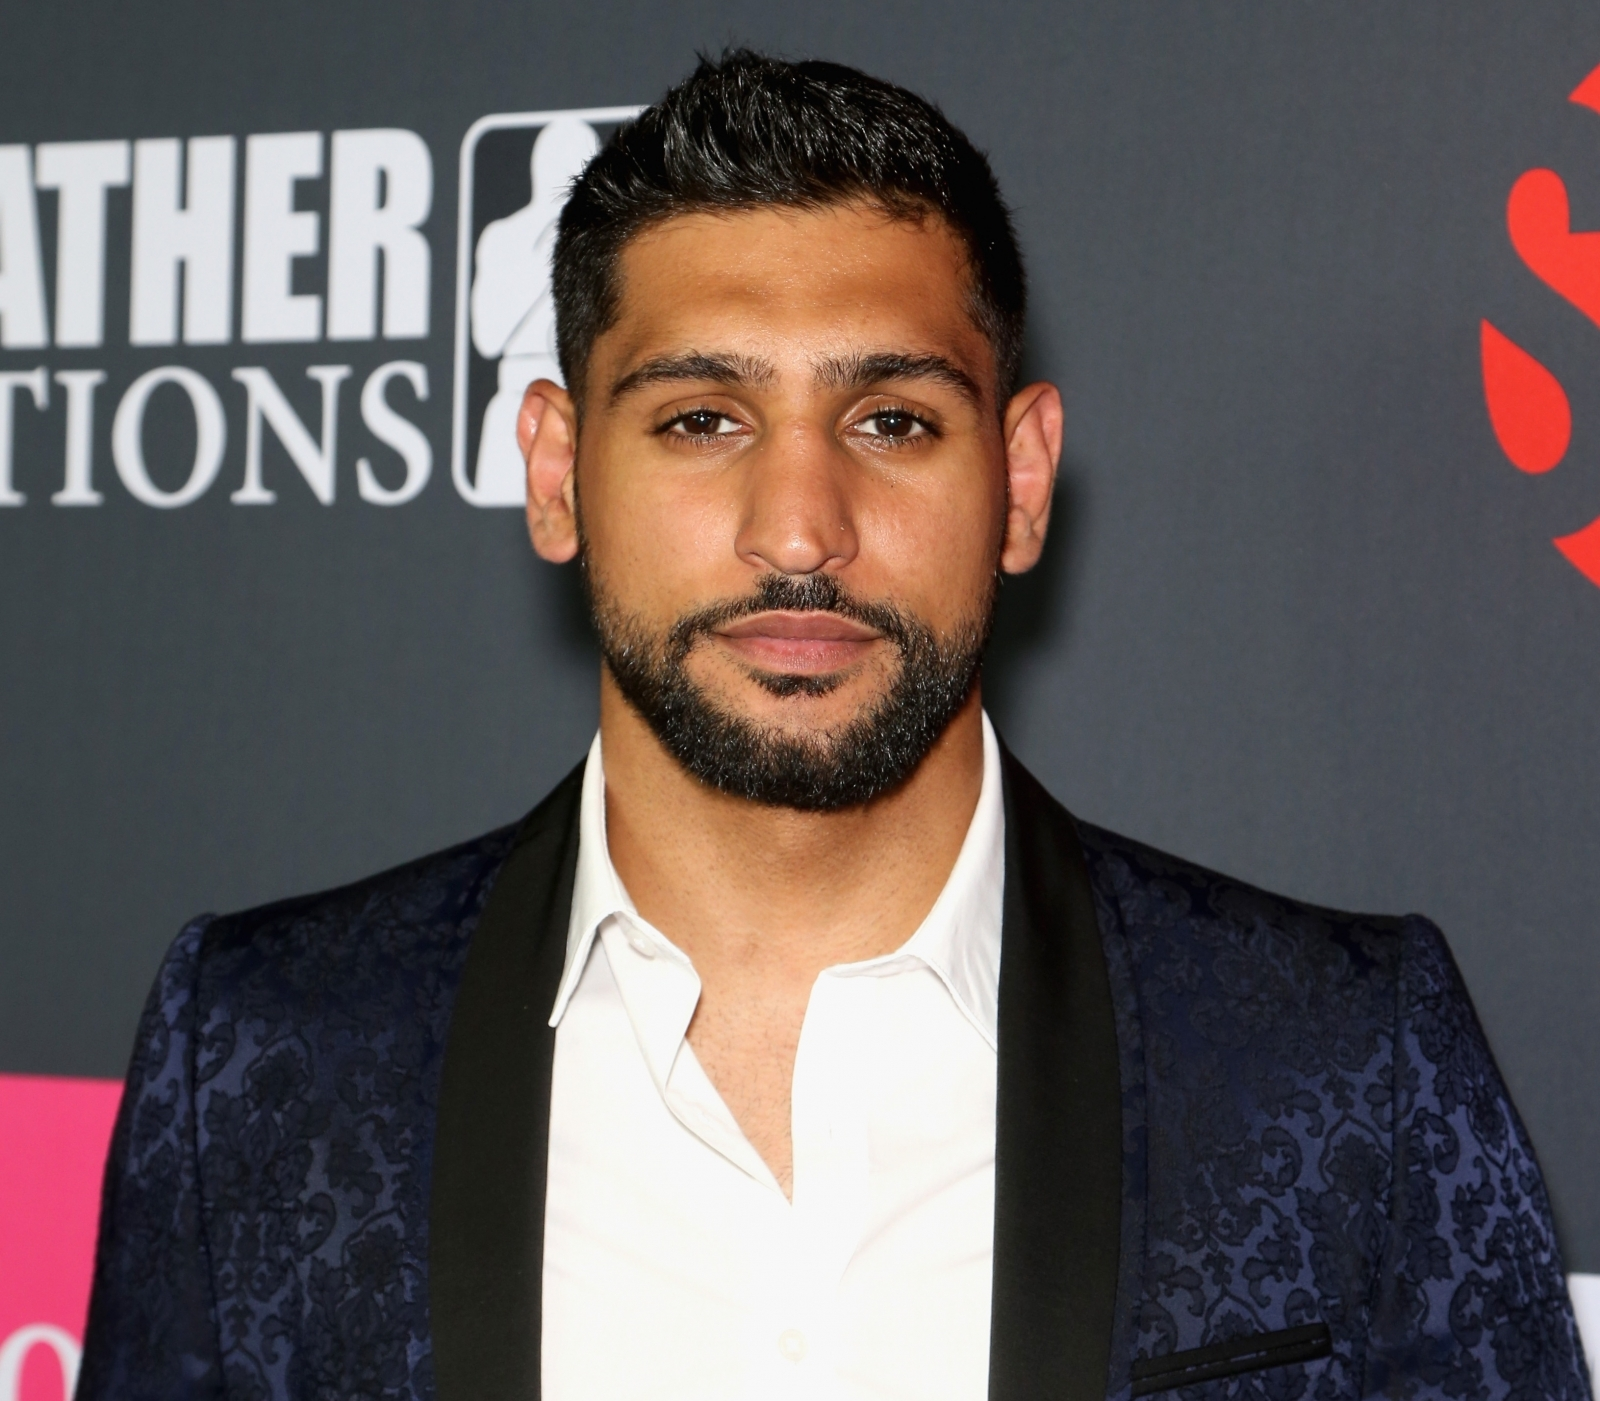 Amir Khan Ends Bitter Family Feud Despite His Father